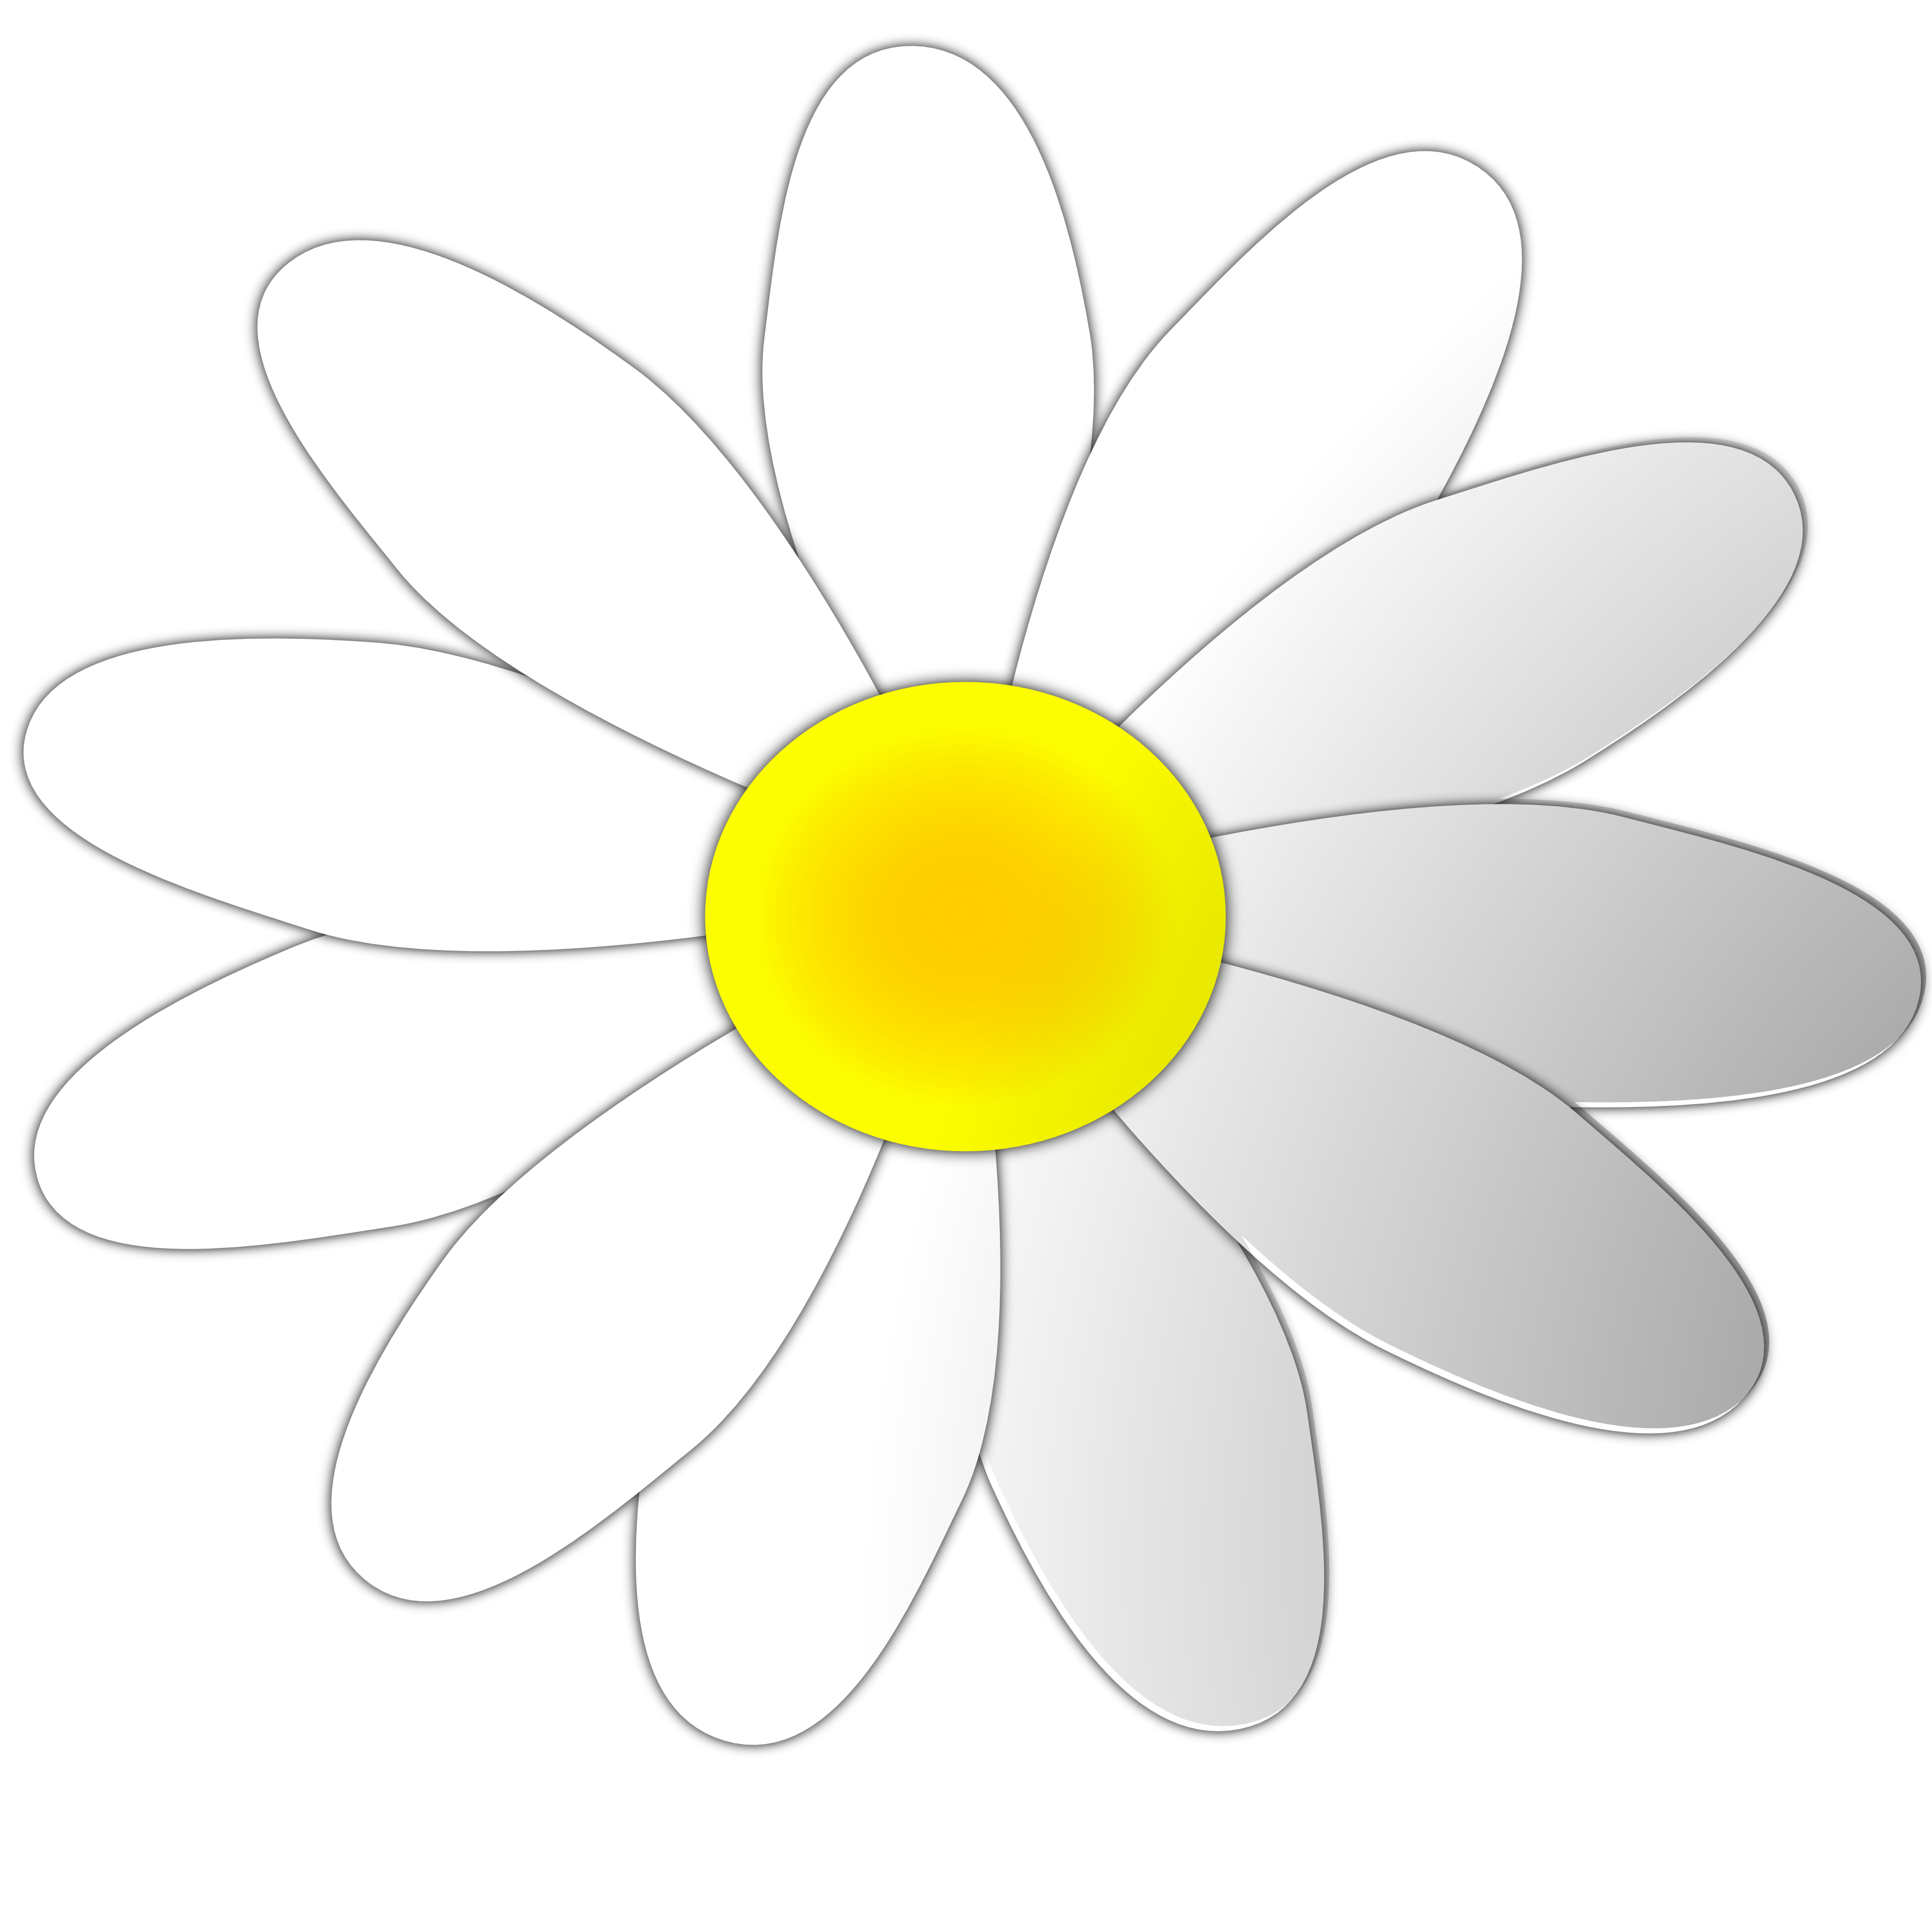 White Flower clipart #15, Download drawings